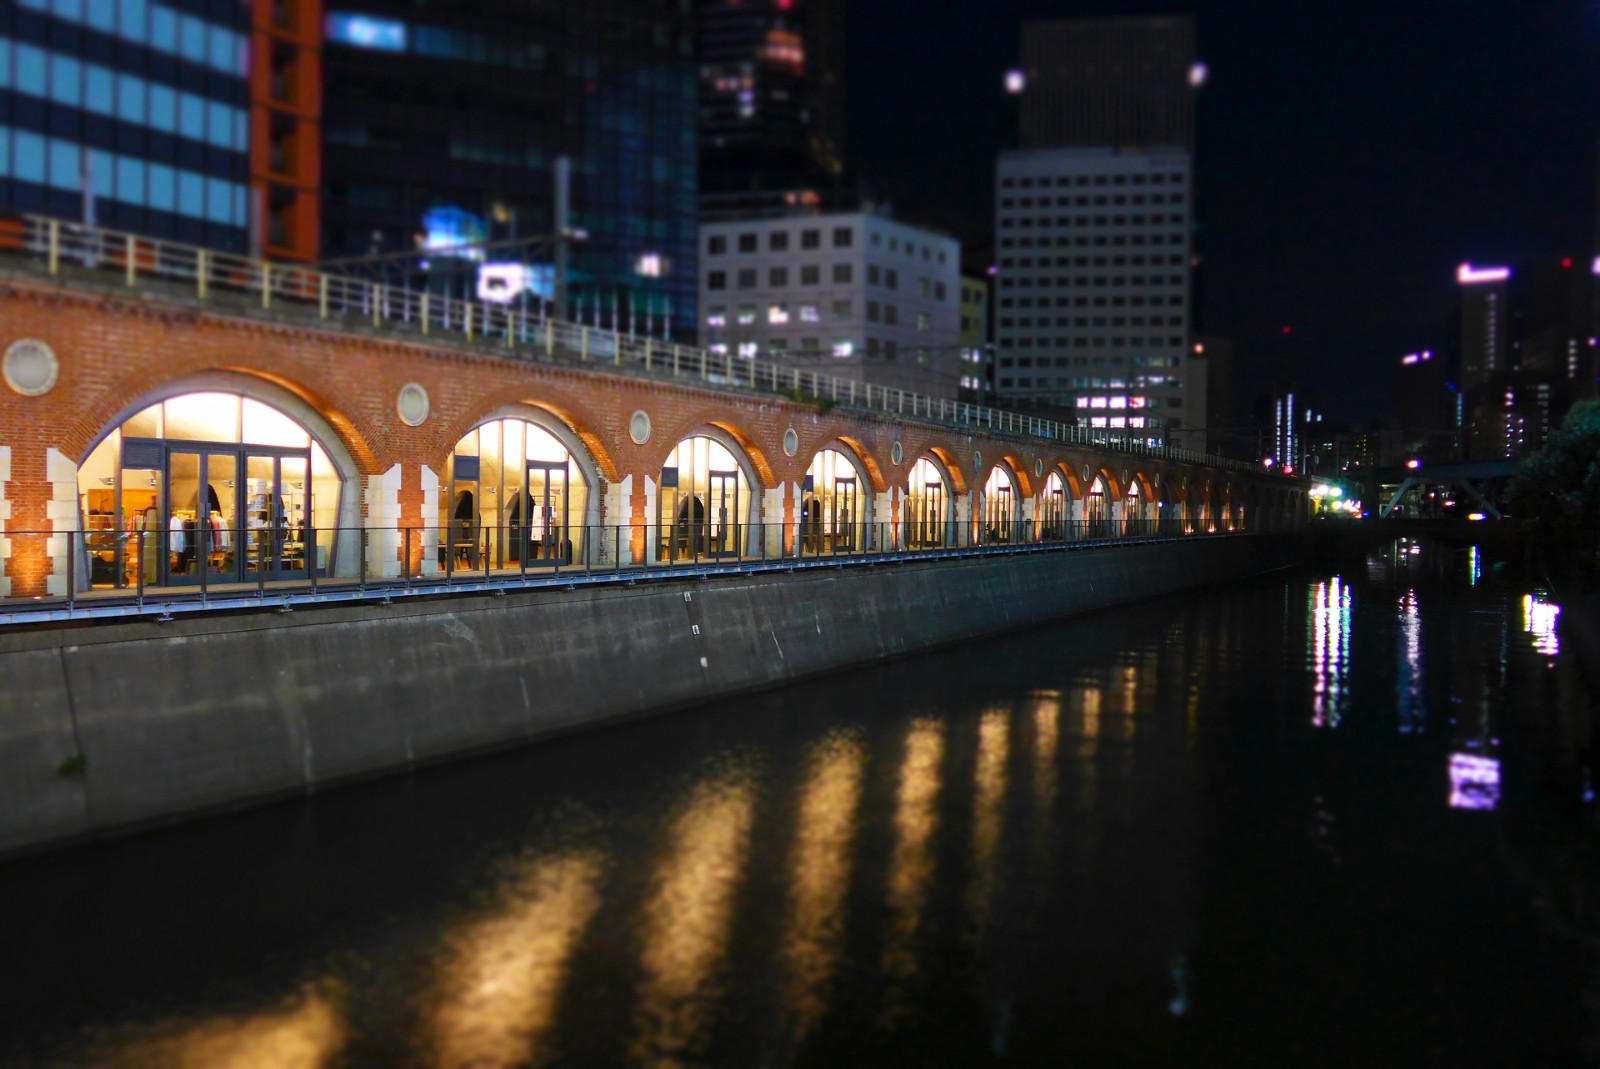 Manseibashi Station at night